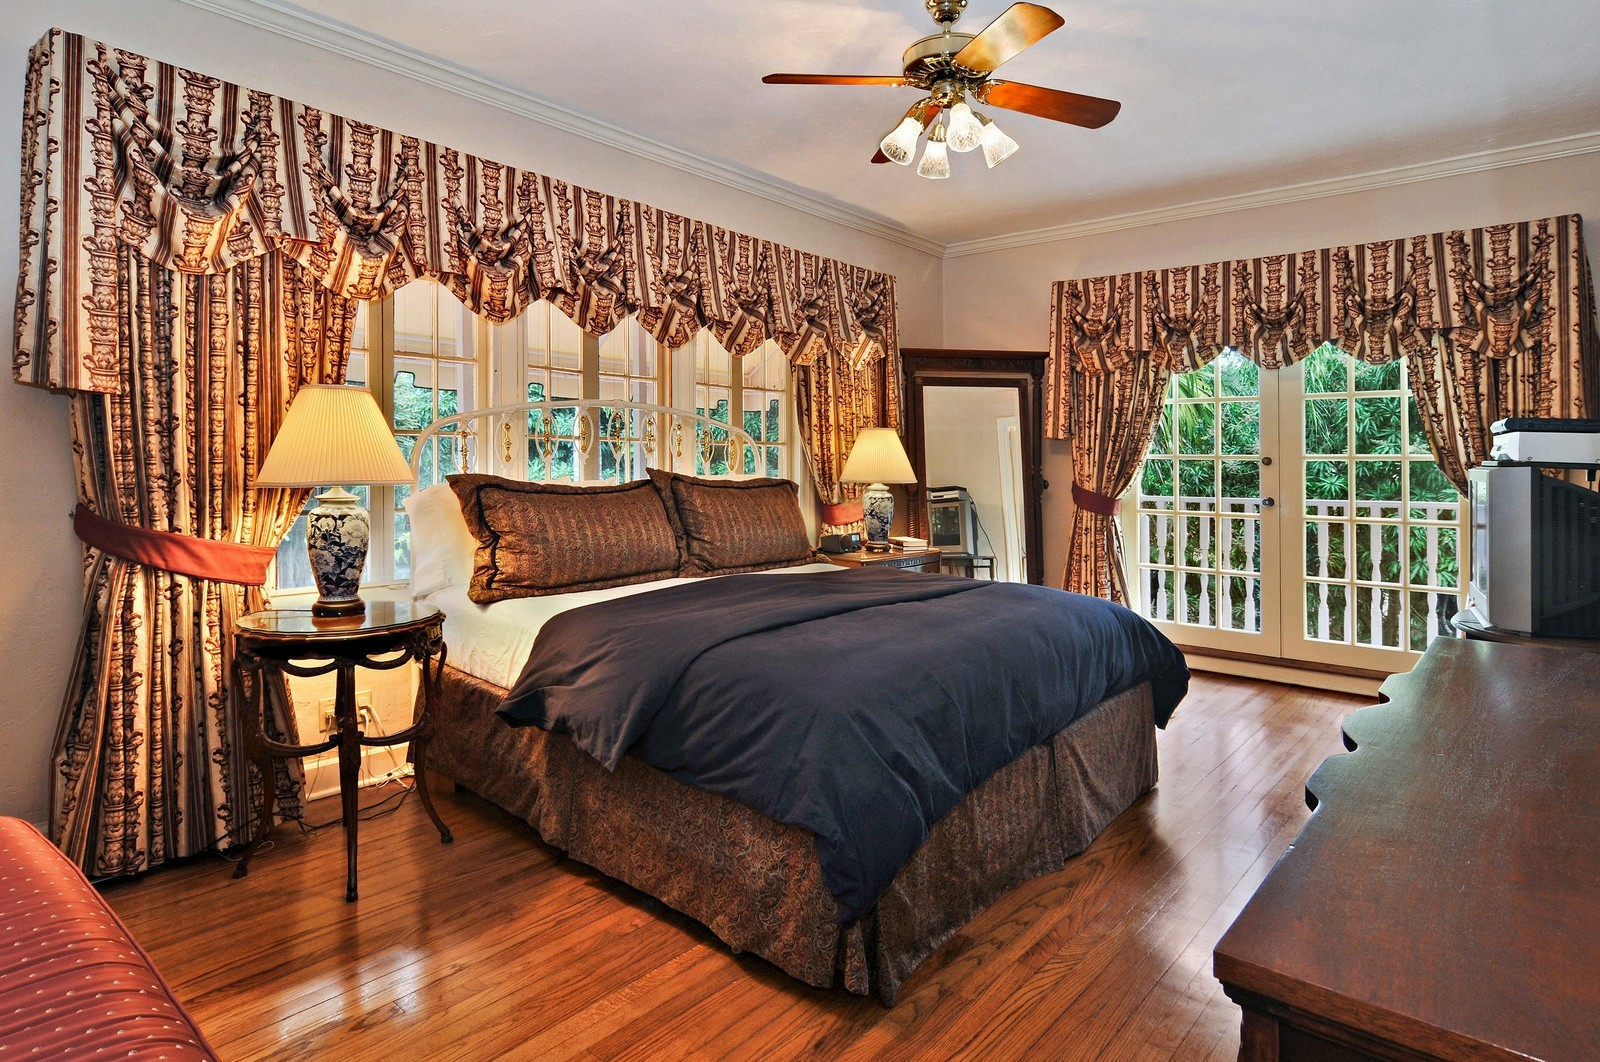 Real Estate Photography - 716 Alhambra Circle, Coral Gables, FL, 33134 - Master Bedroom